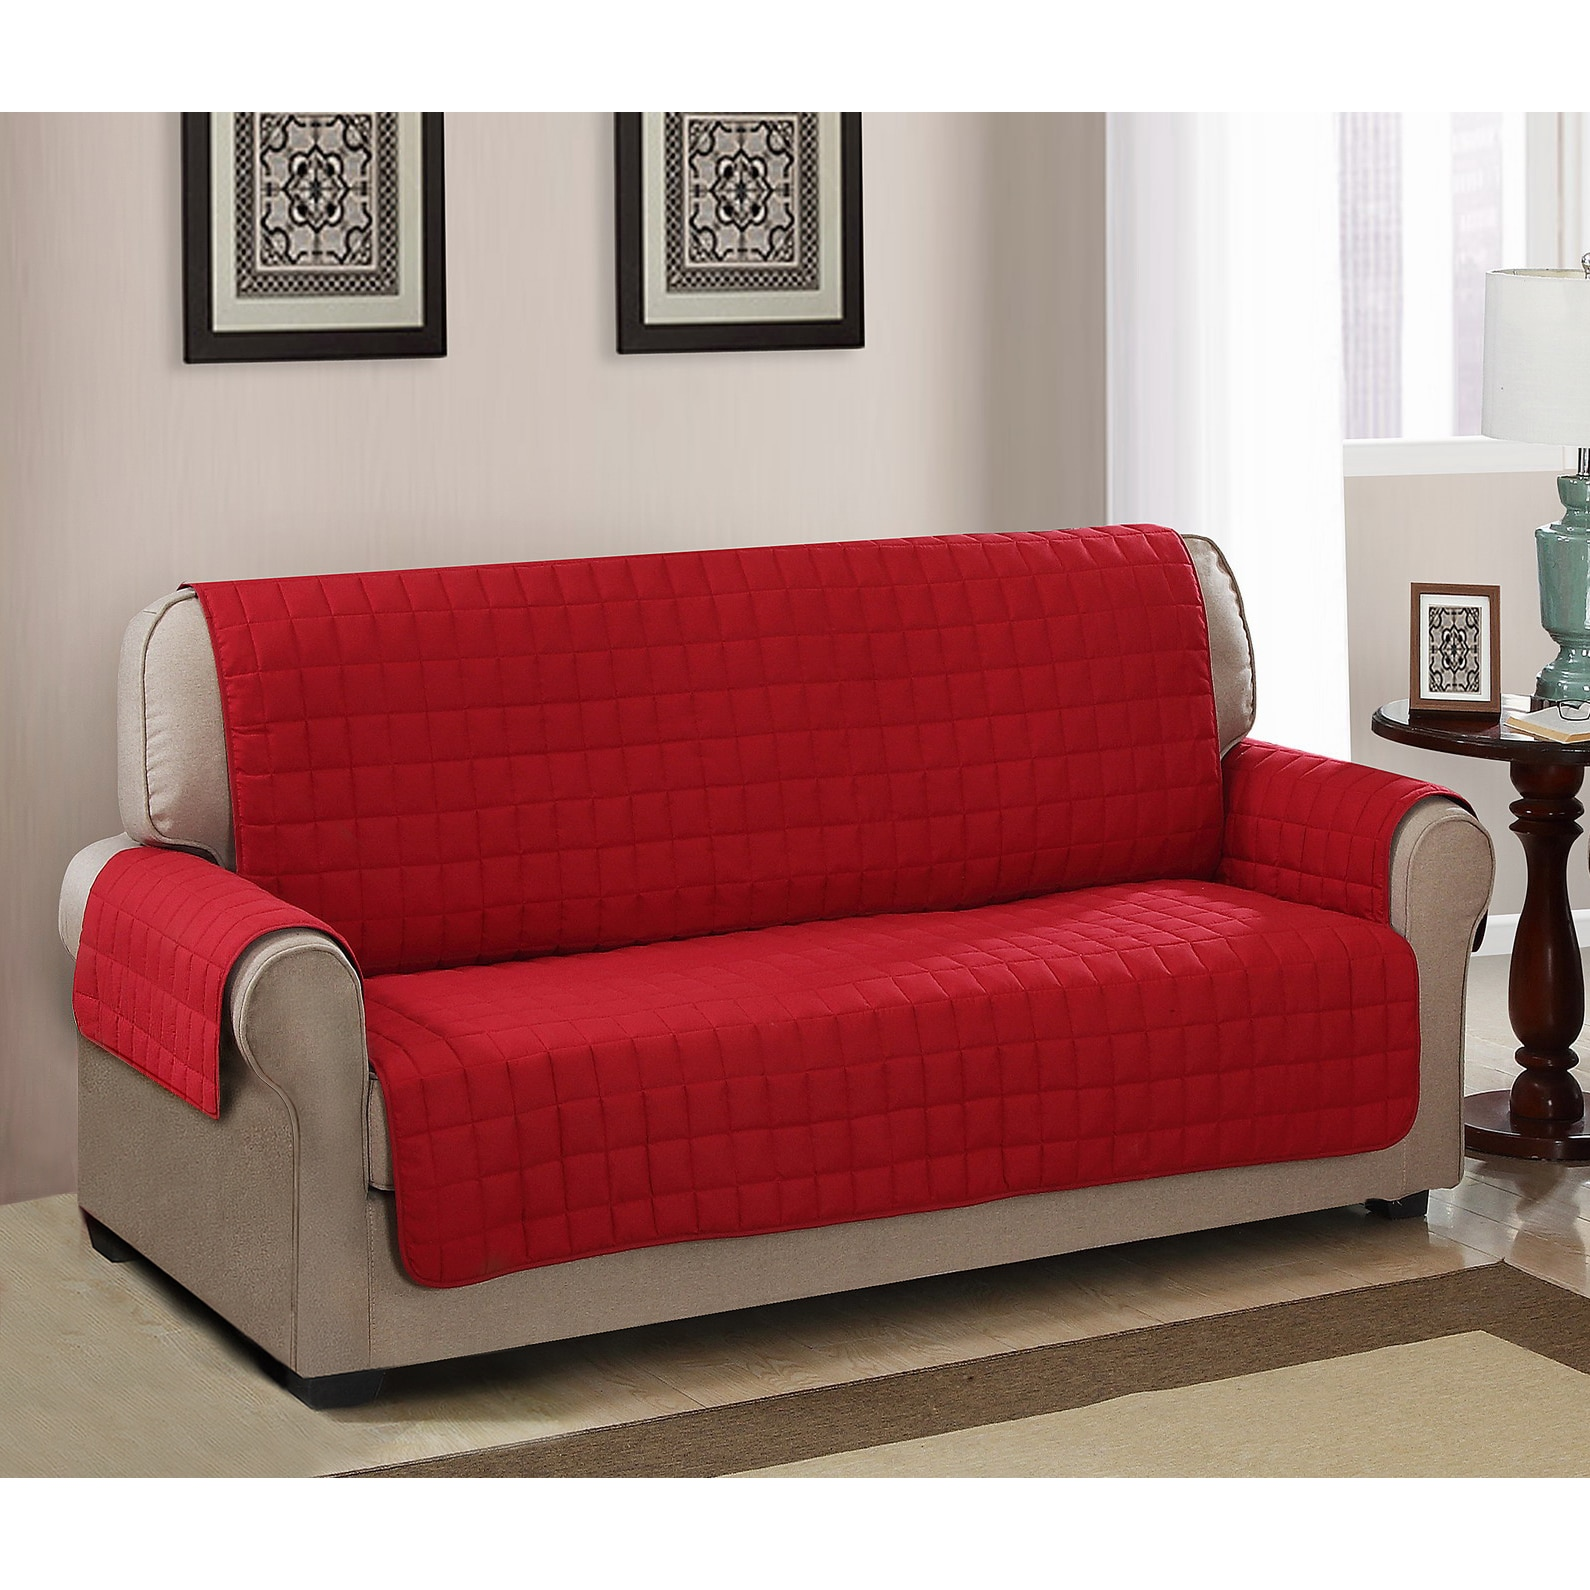 Home Sofa In A Box Chic Home Jonathan Box Quilted Quick Draped Red Sofa Cover